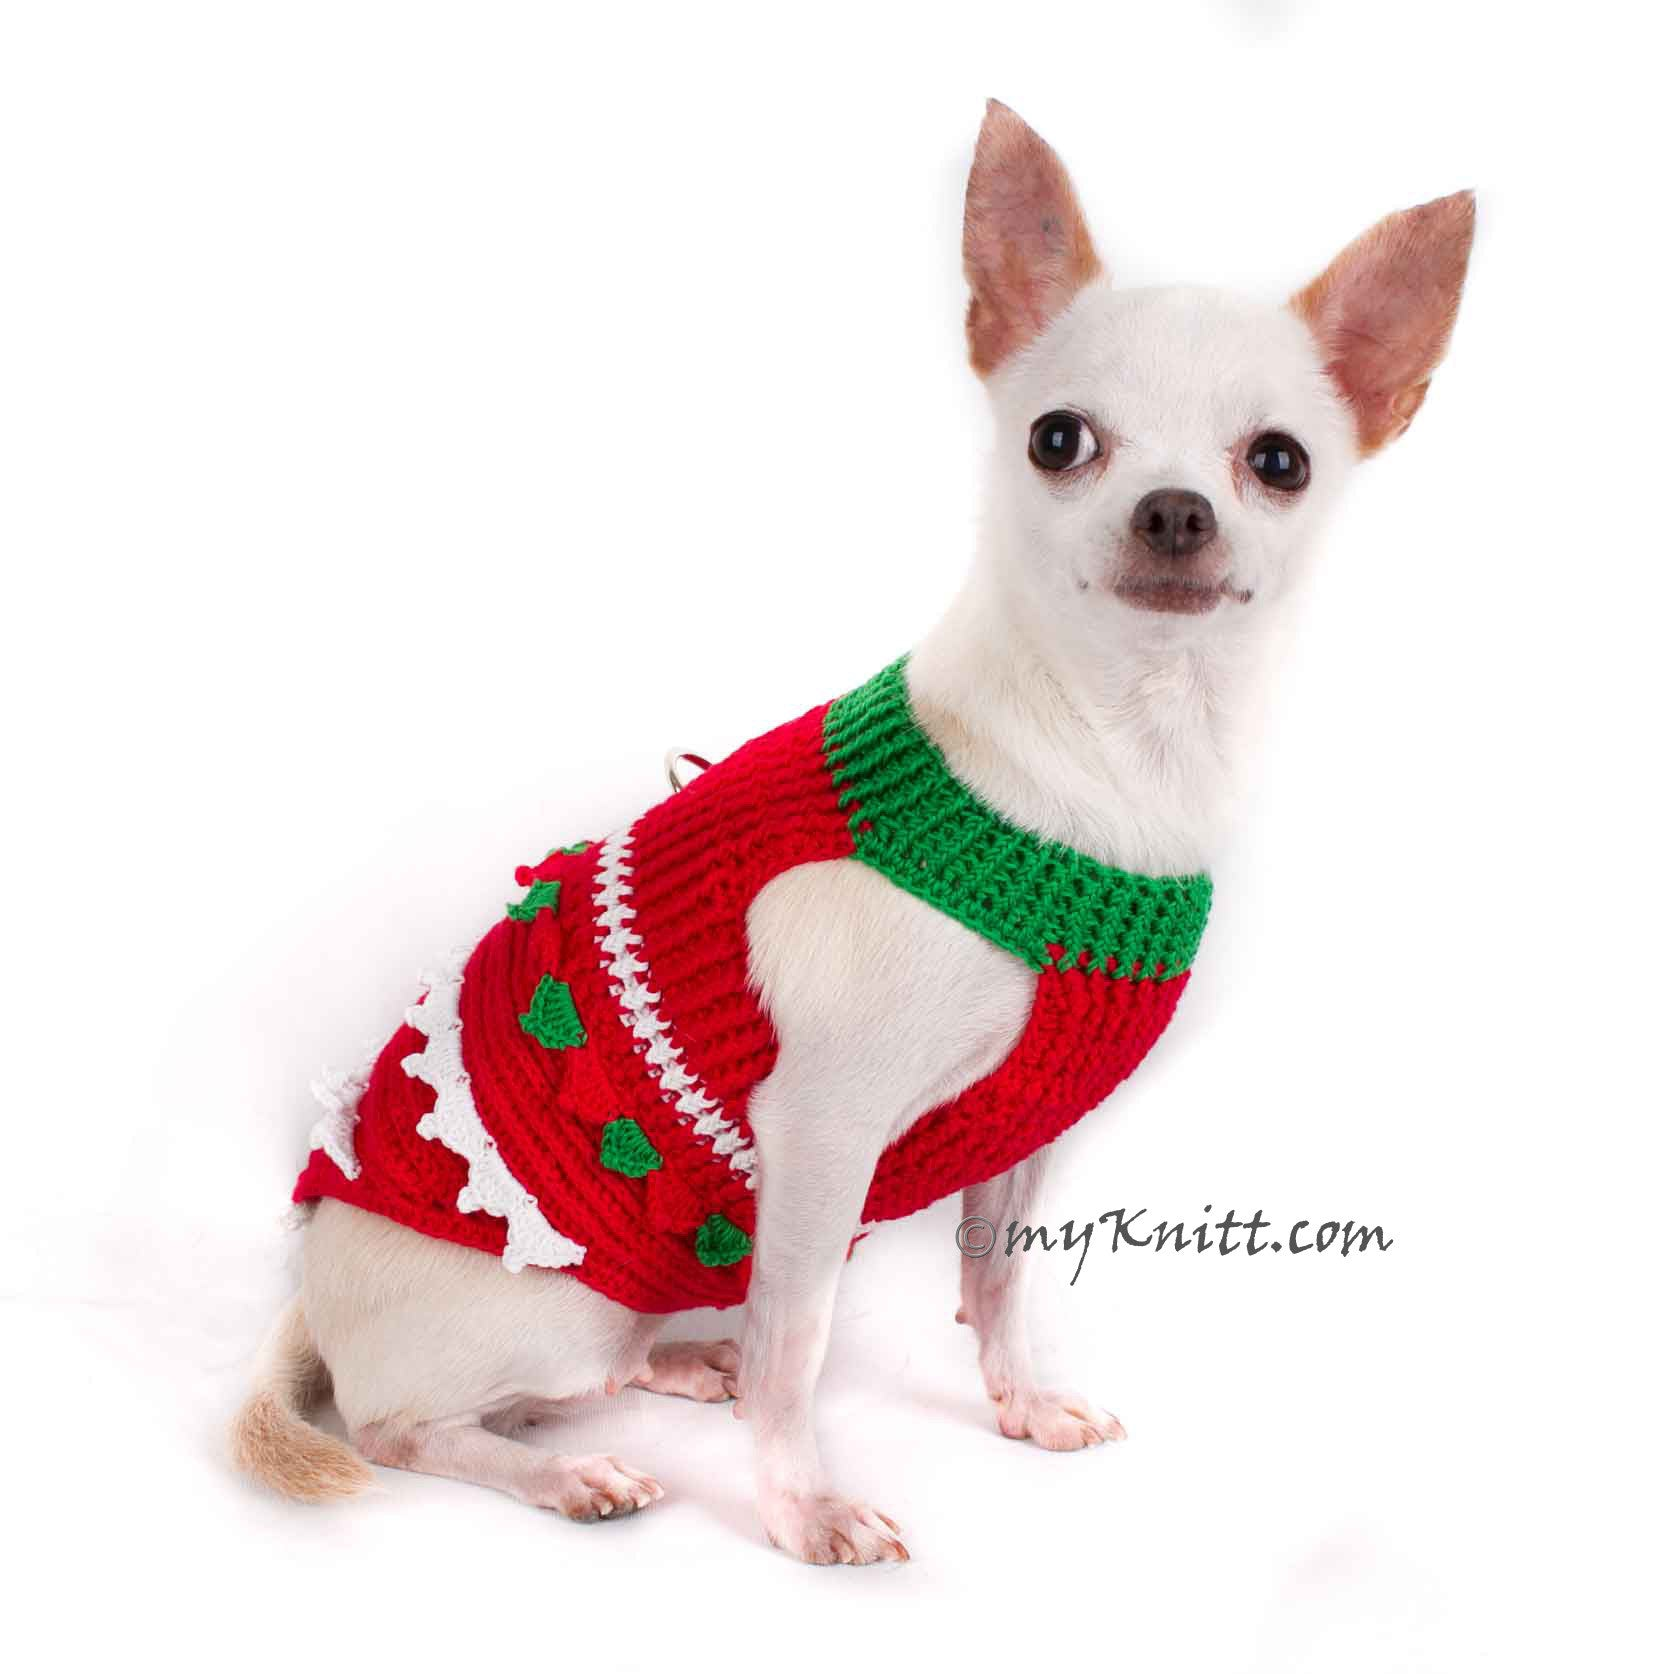 Christmas Tree Chihuahua Clothes Crochet Dog Sweater Df1 Myknitt